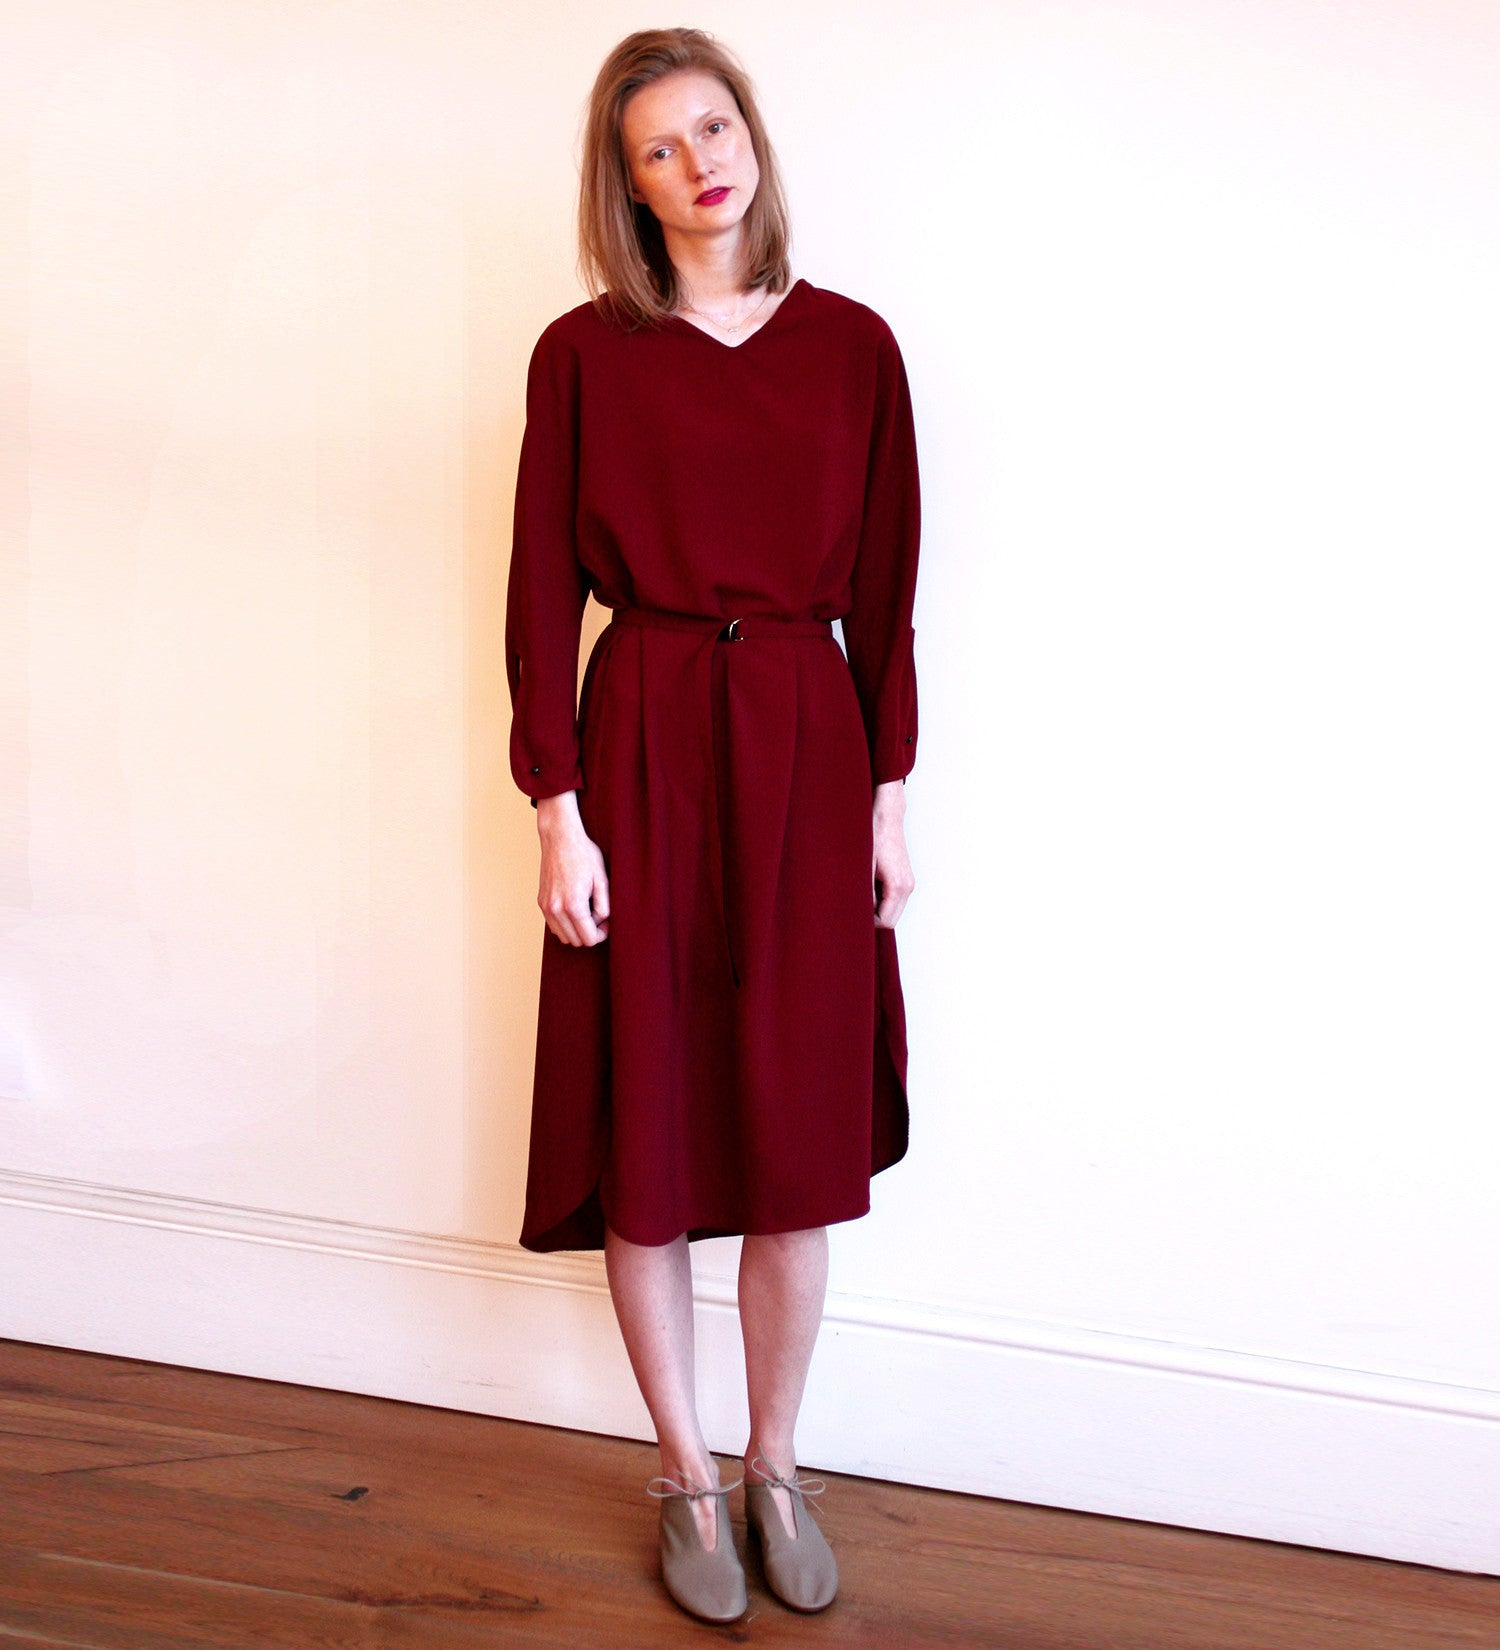 WONDEROUND CREPE V NECK LONG BURGUNDY DRESS